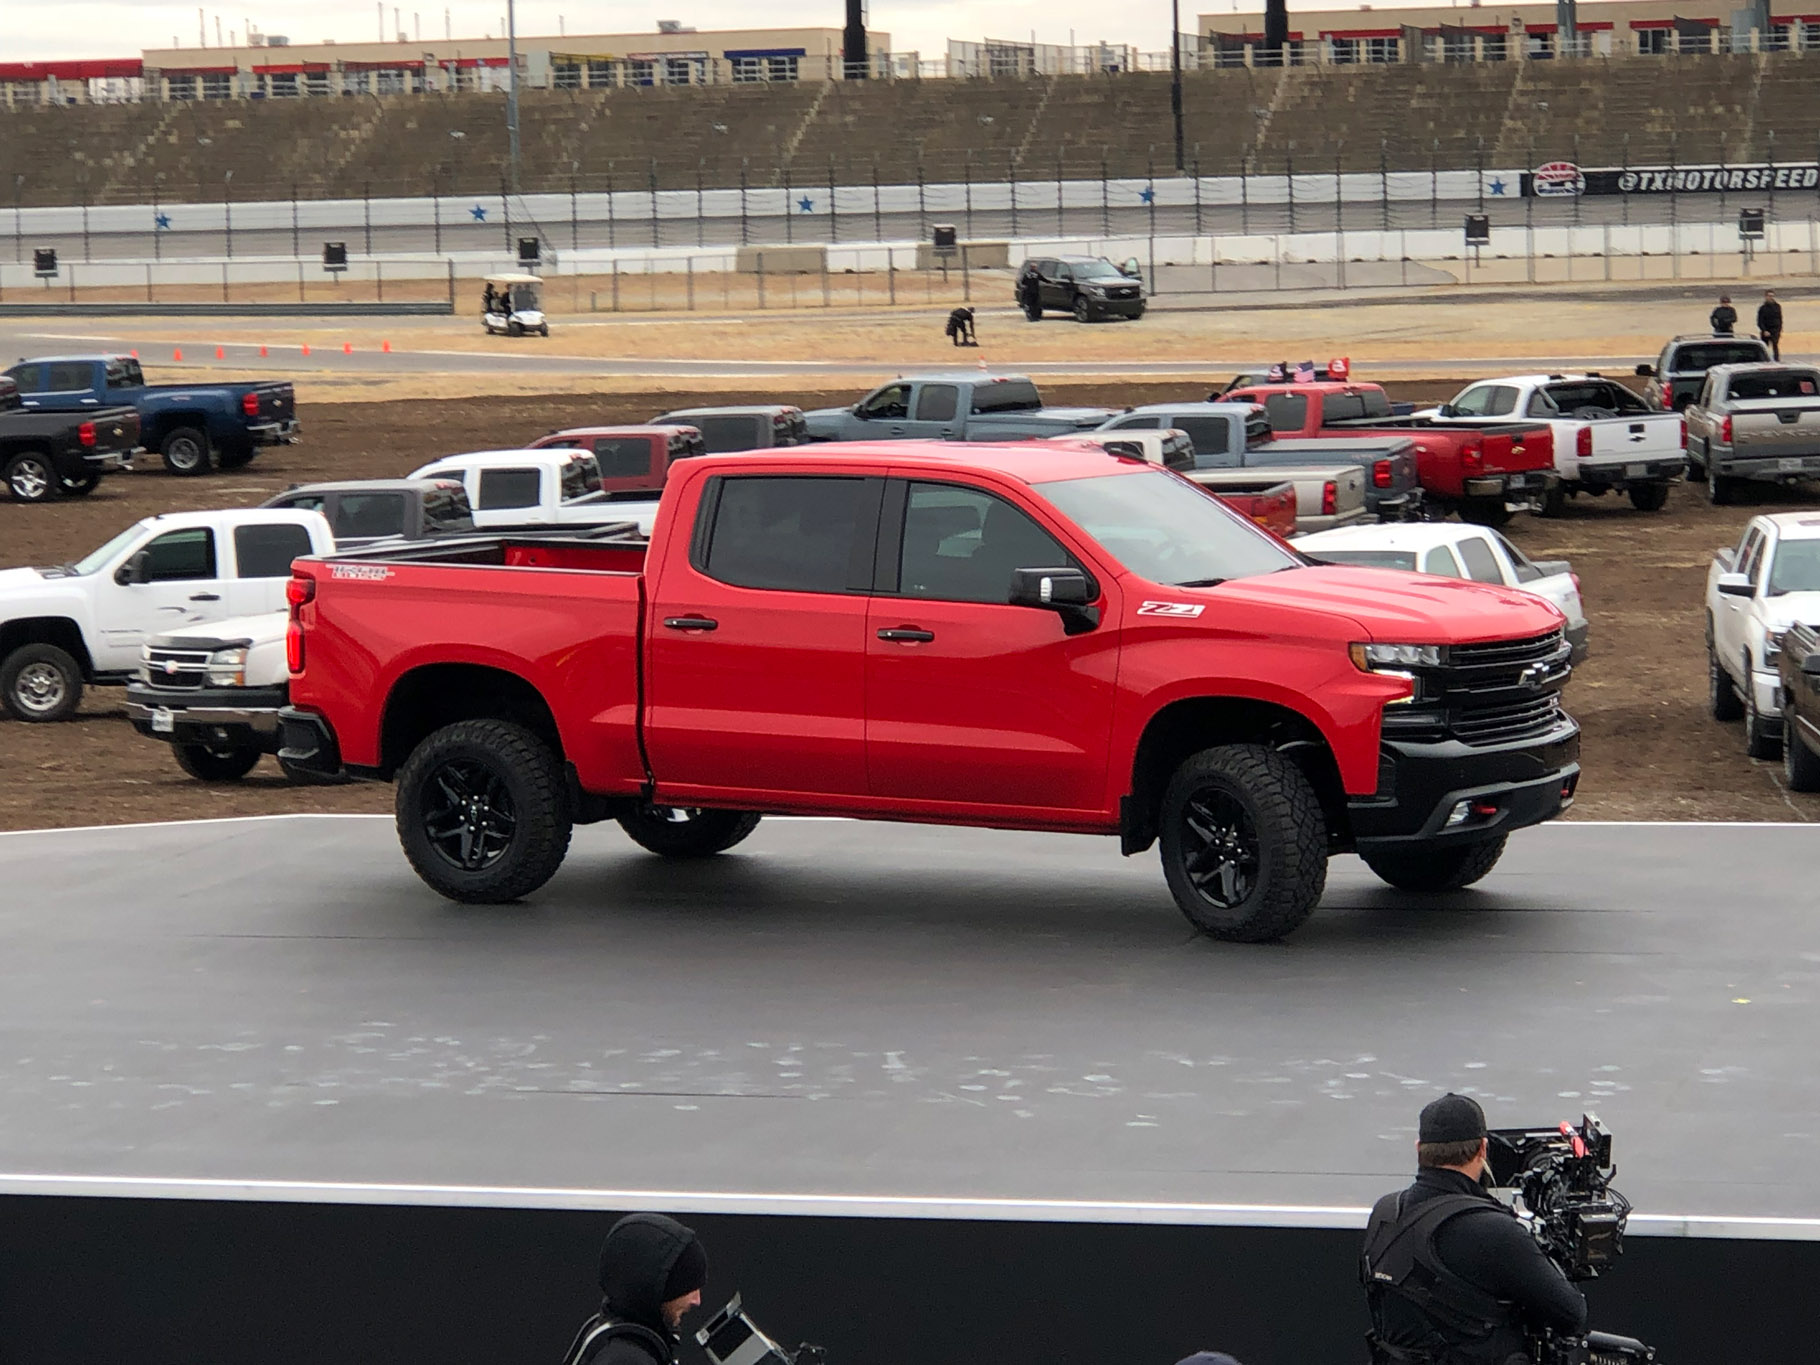 2019 Chevrolet Silverado Revealed Via Helicopter In Texas